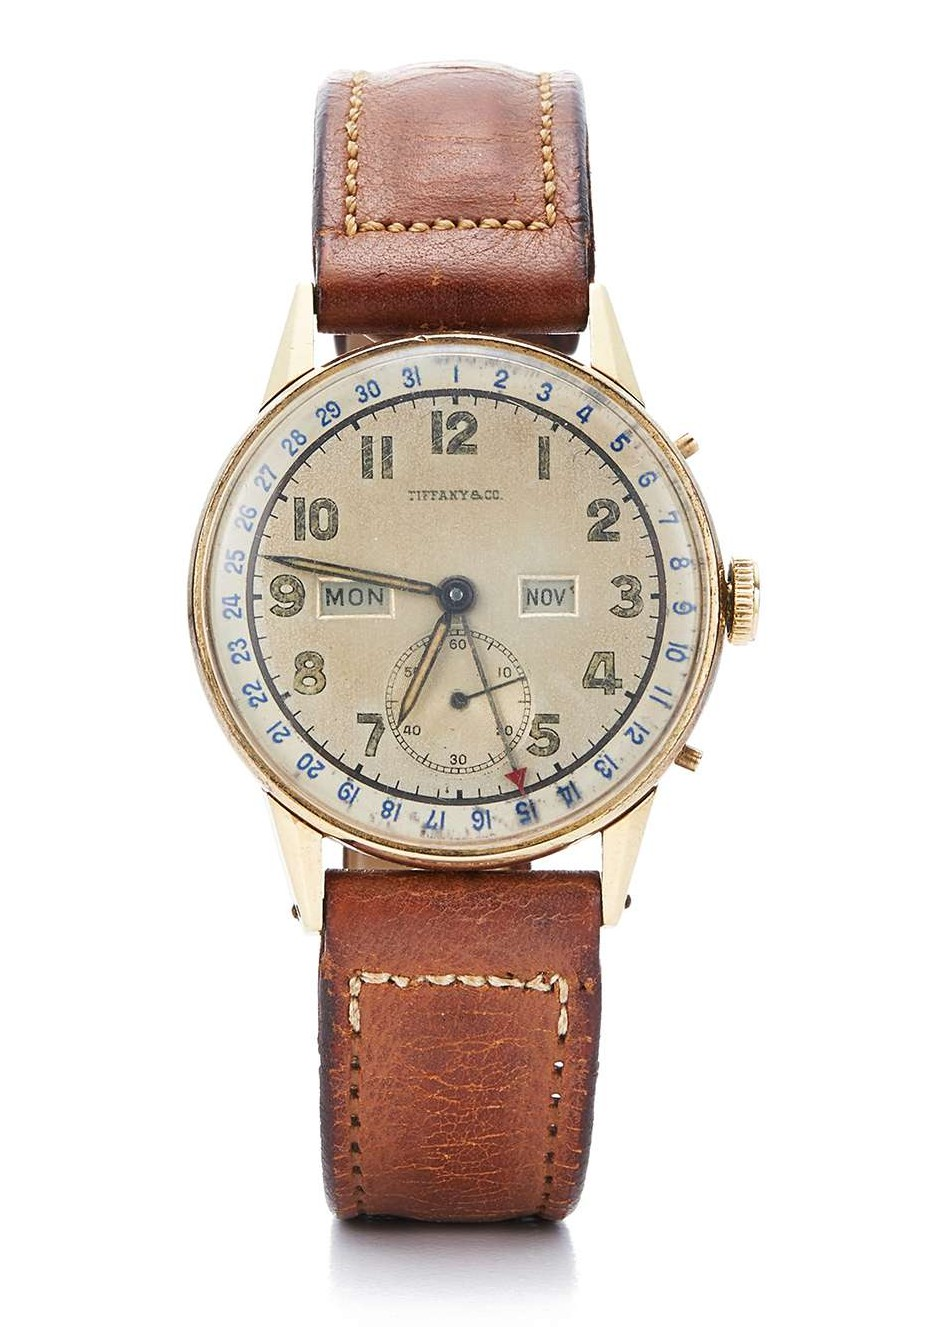 Timepiece-gifted-to-_3086-1500